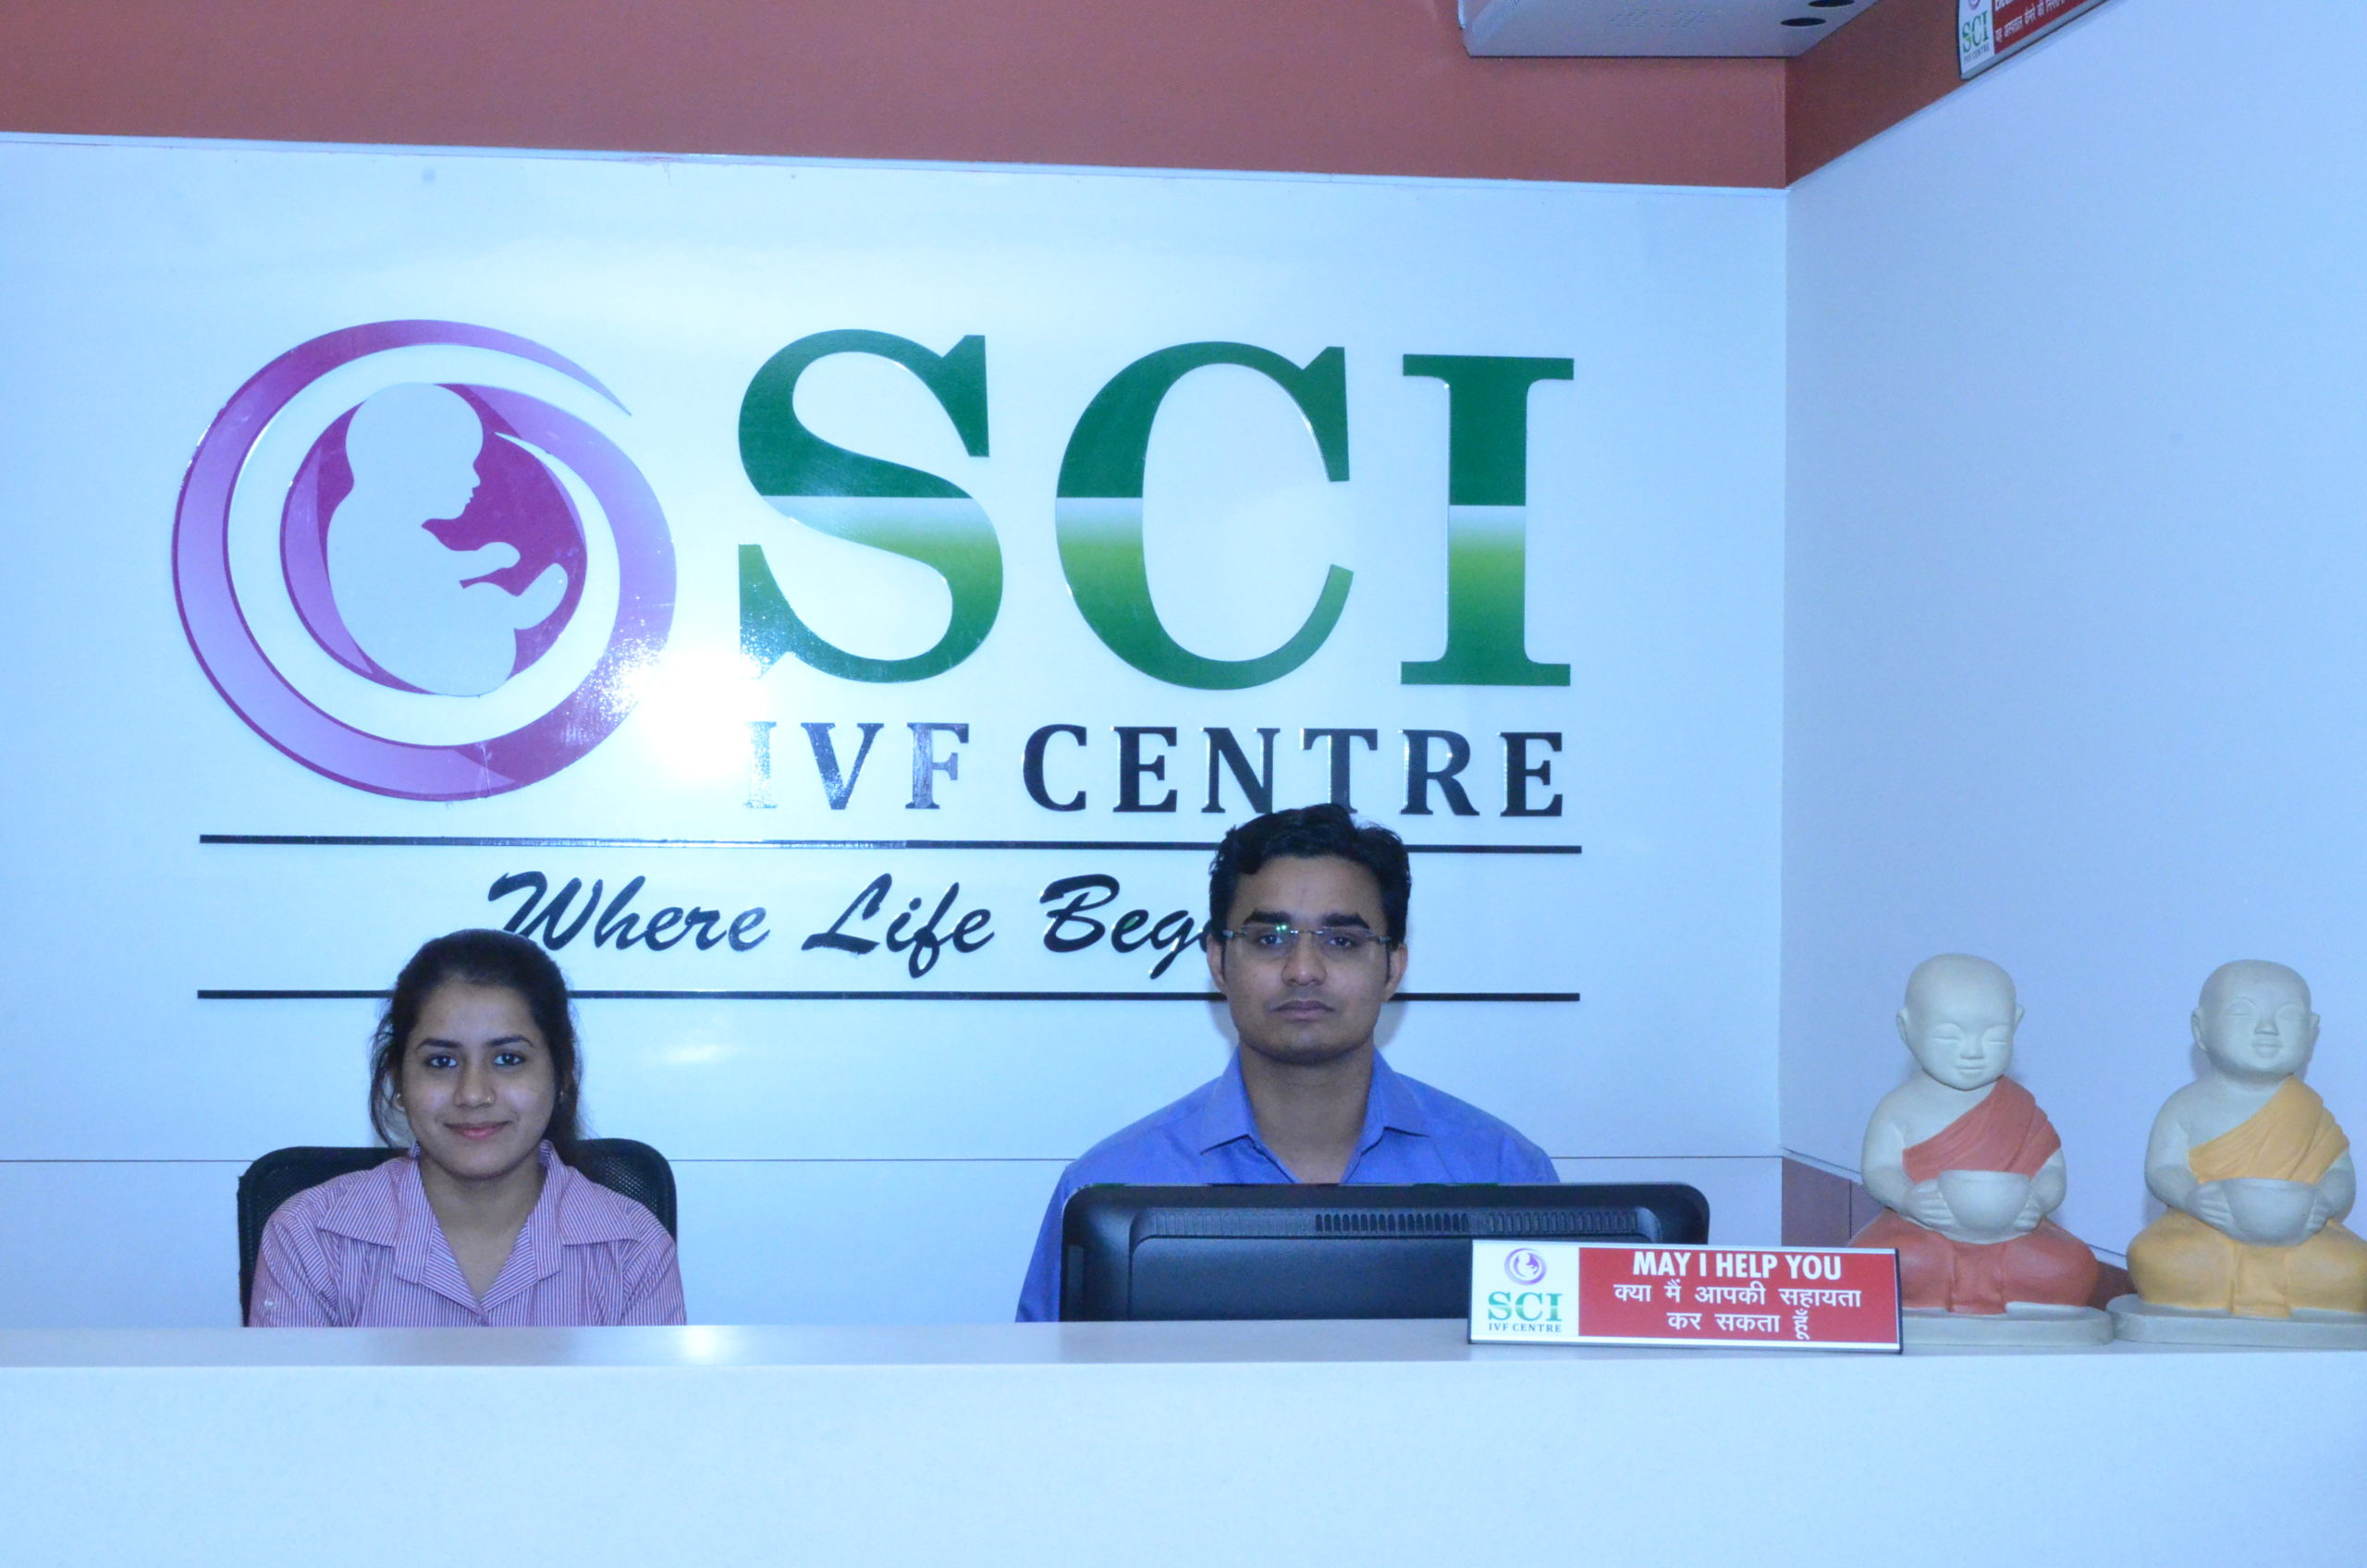 sci ivf centre reception2